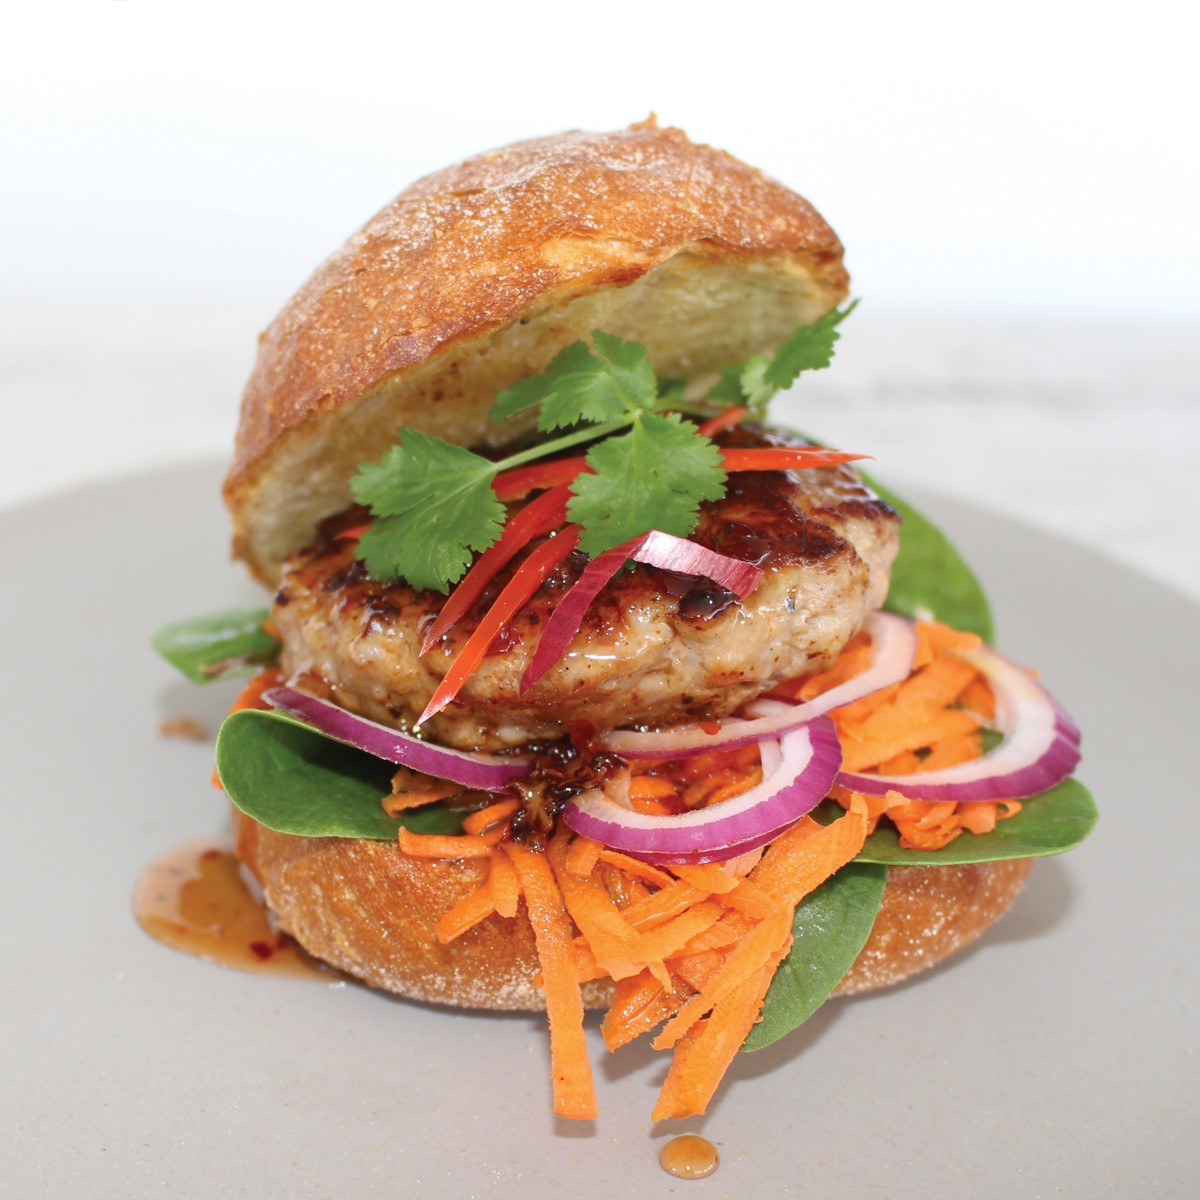 Asian Style Pork Burger with Chilli Jam - SunPork Pork Mince